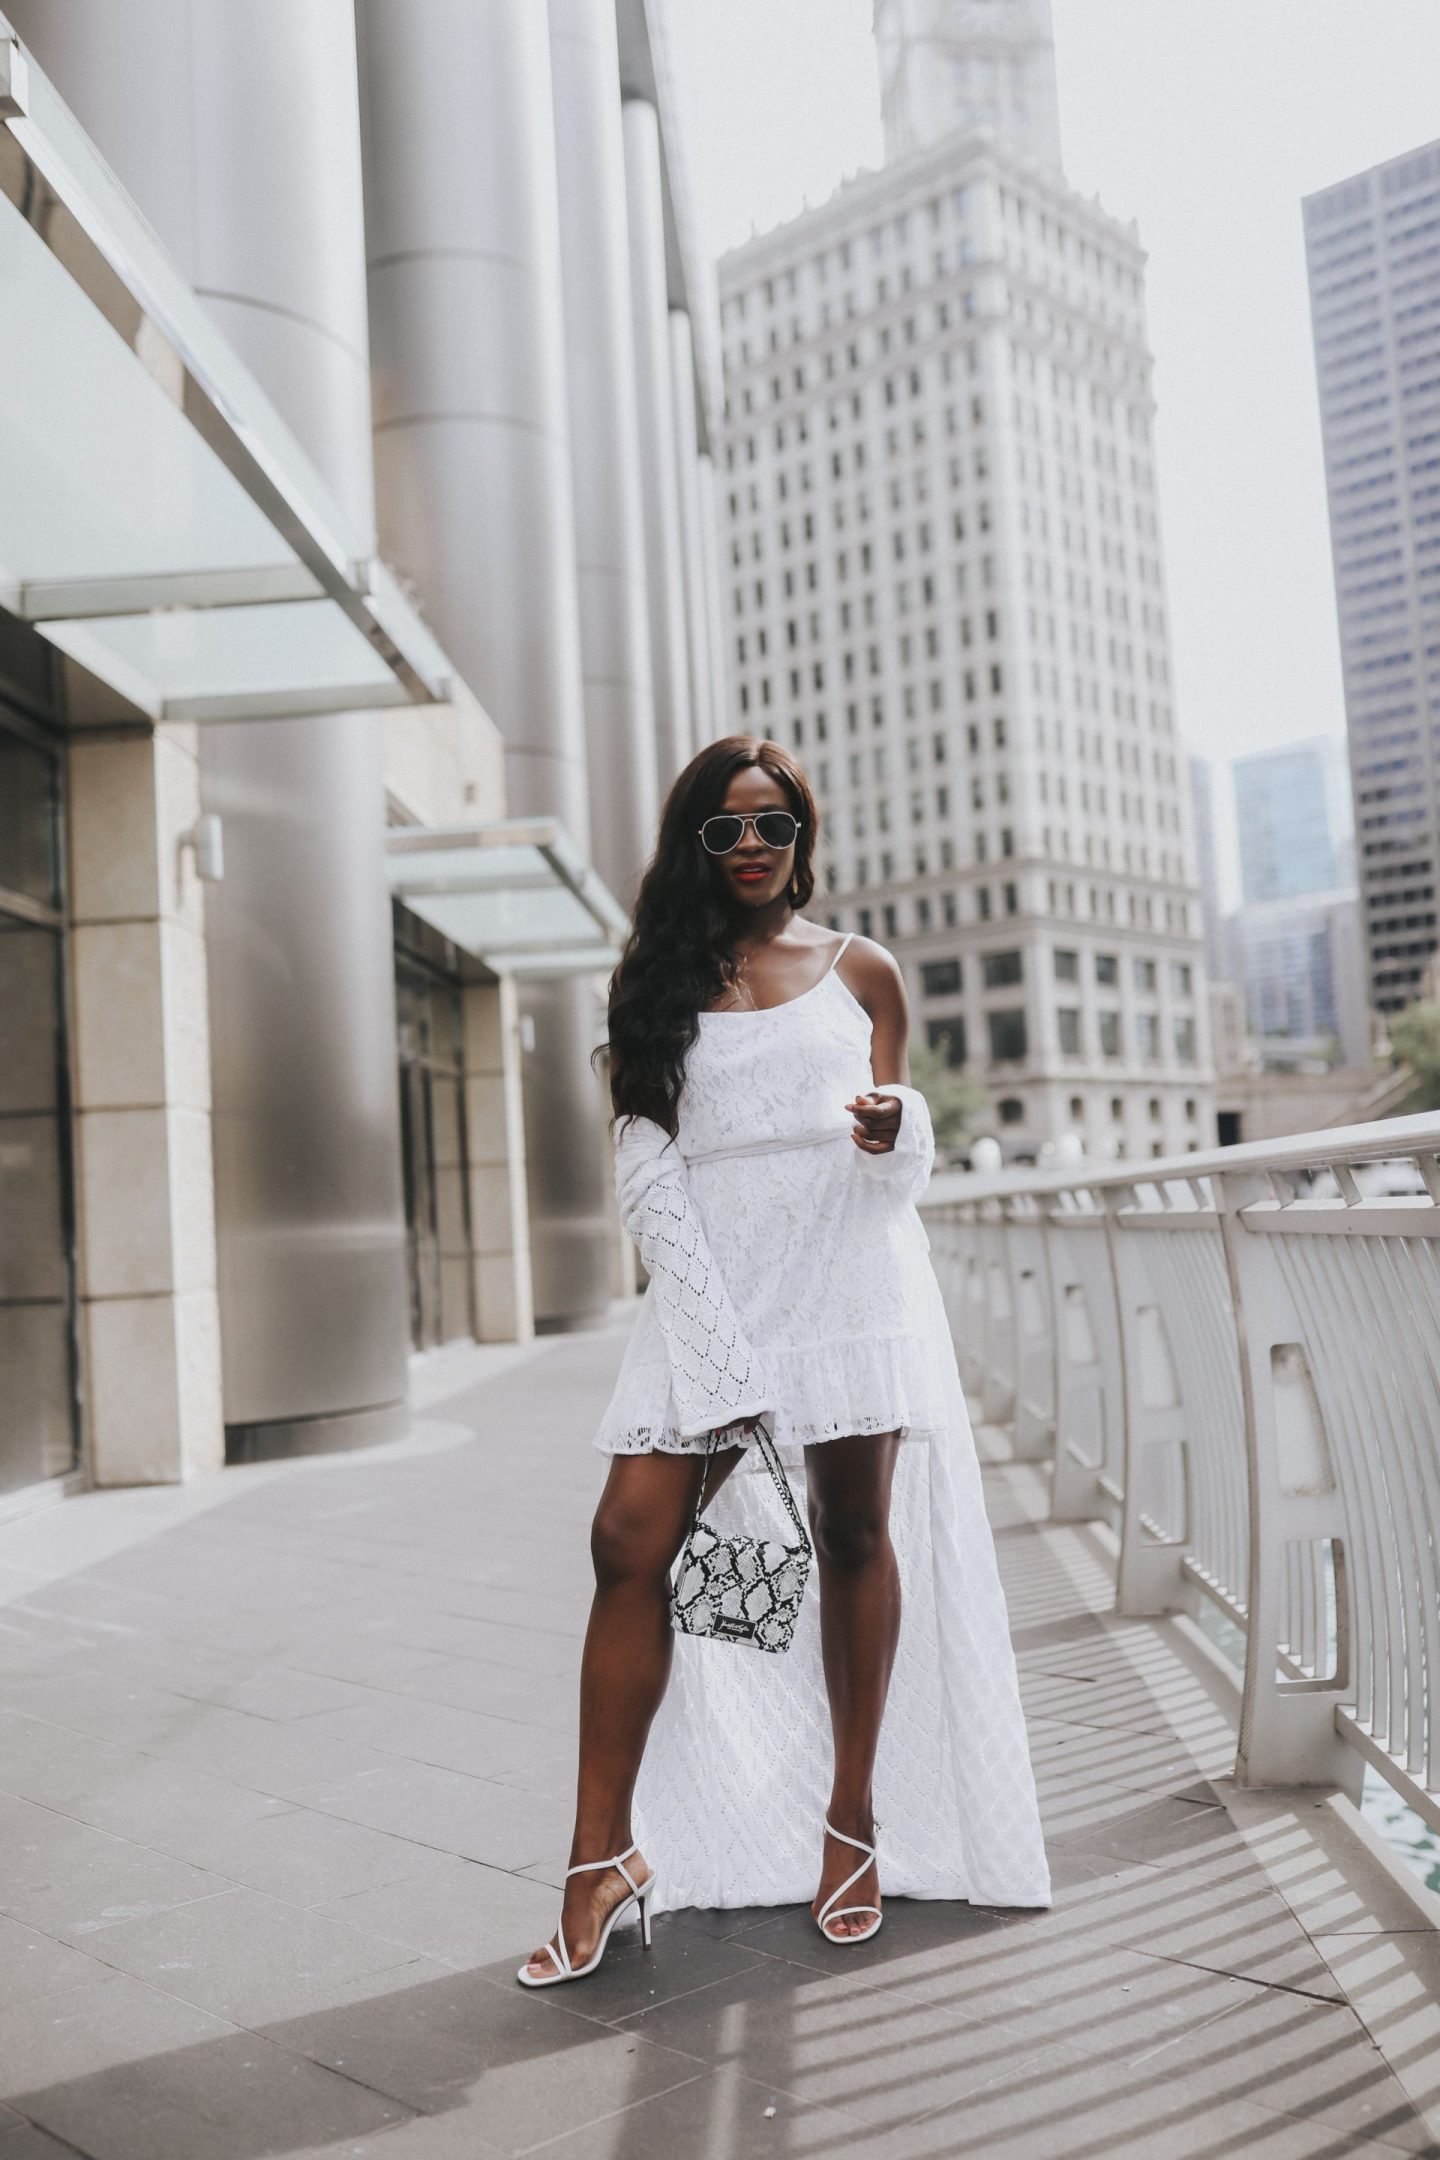 How to pair a cardigan with a white tank dress